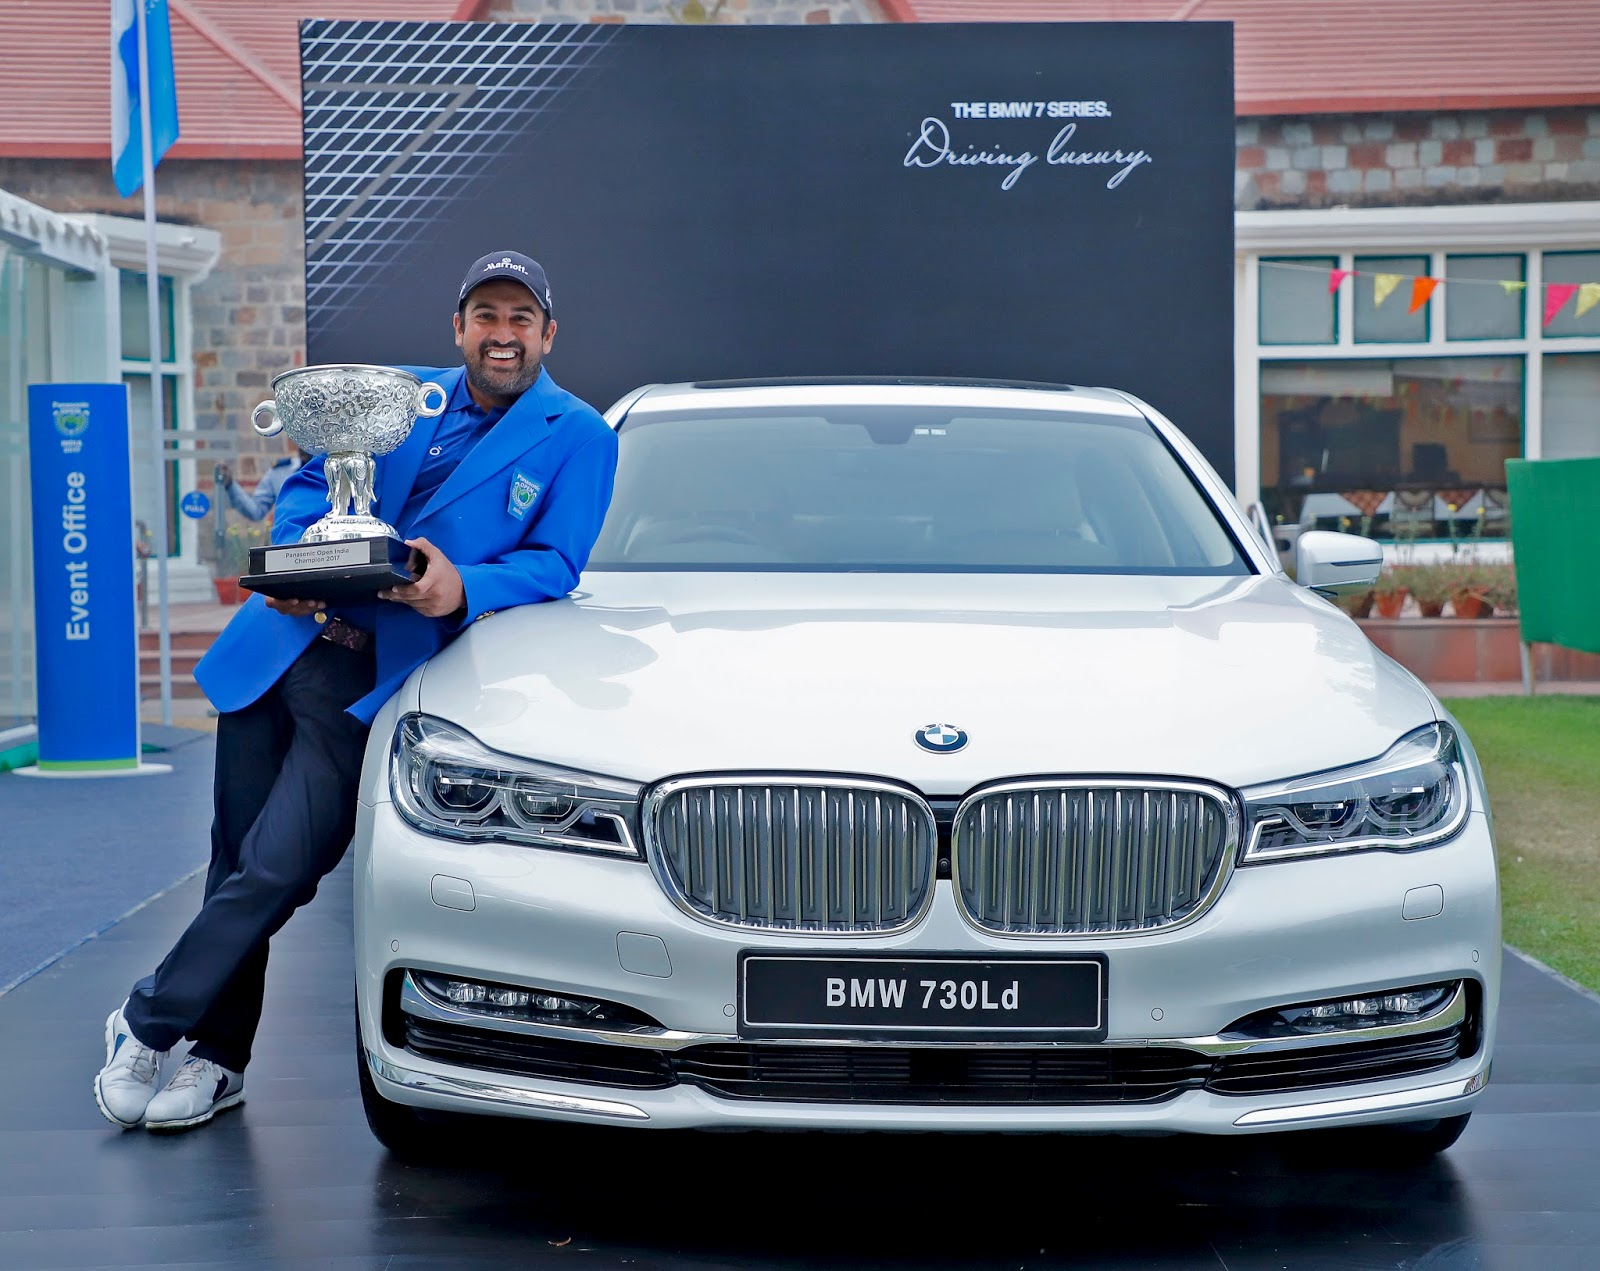 BMW stands out as the 'Luxury Mobility Partner' at the